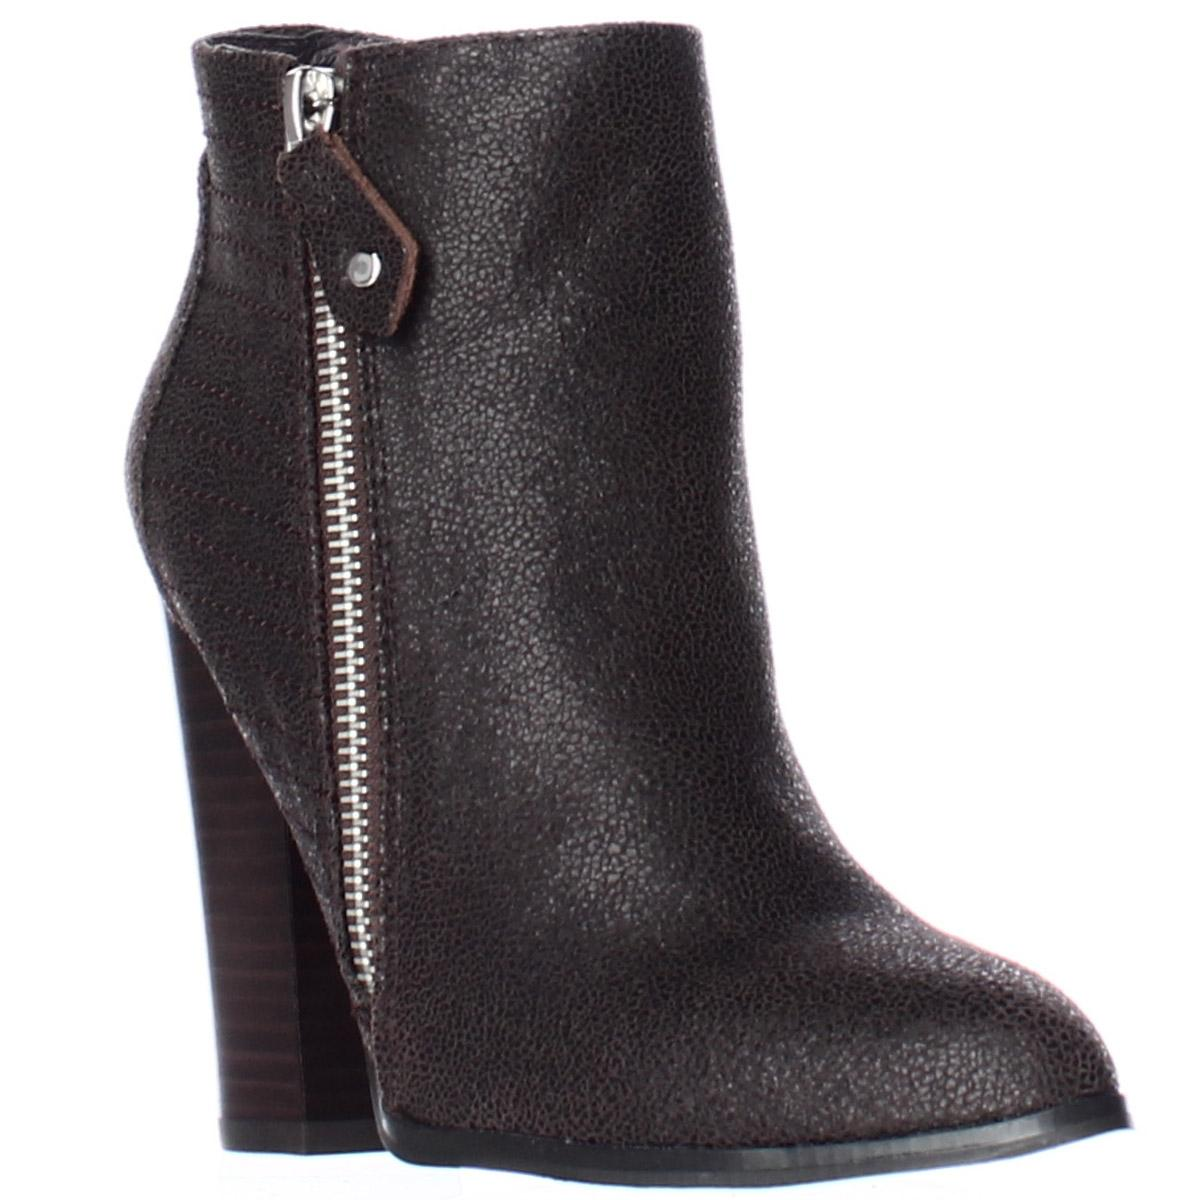 d3f55671c3c6 ... Brown Brown Brown Nadine Pointed Toe Ankle Fashion Dark Boots Booties  Size US 6 Regular ...